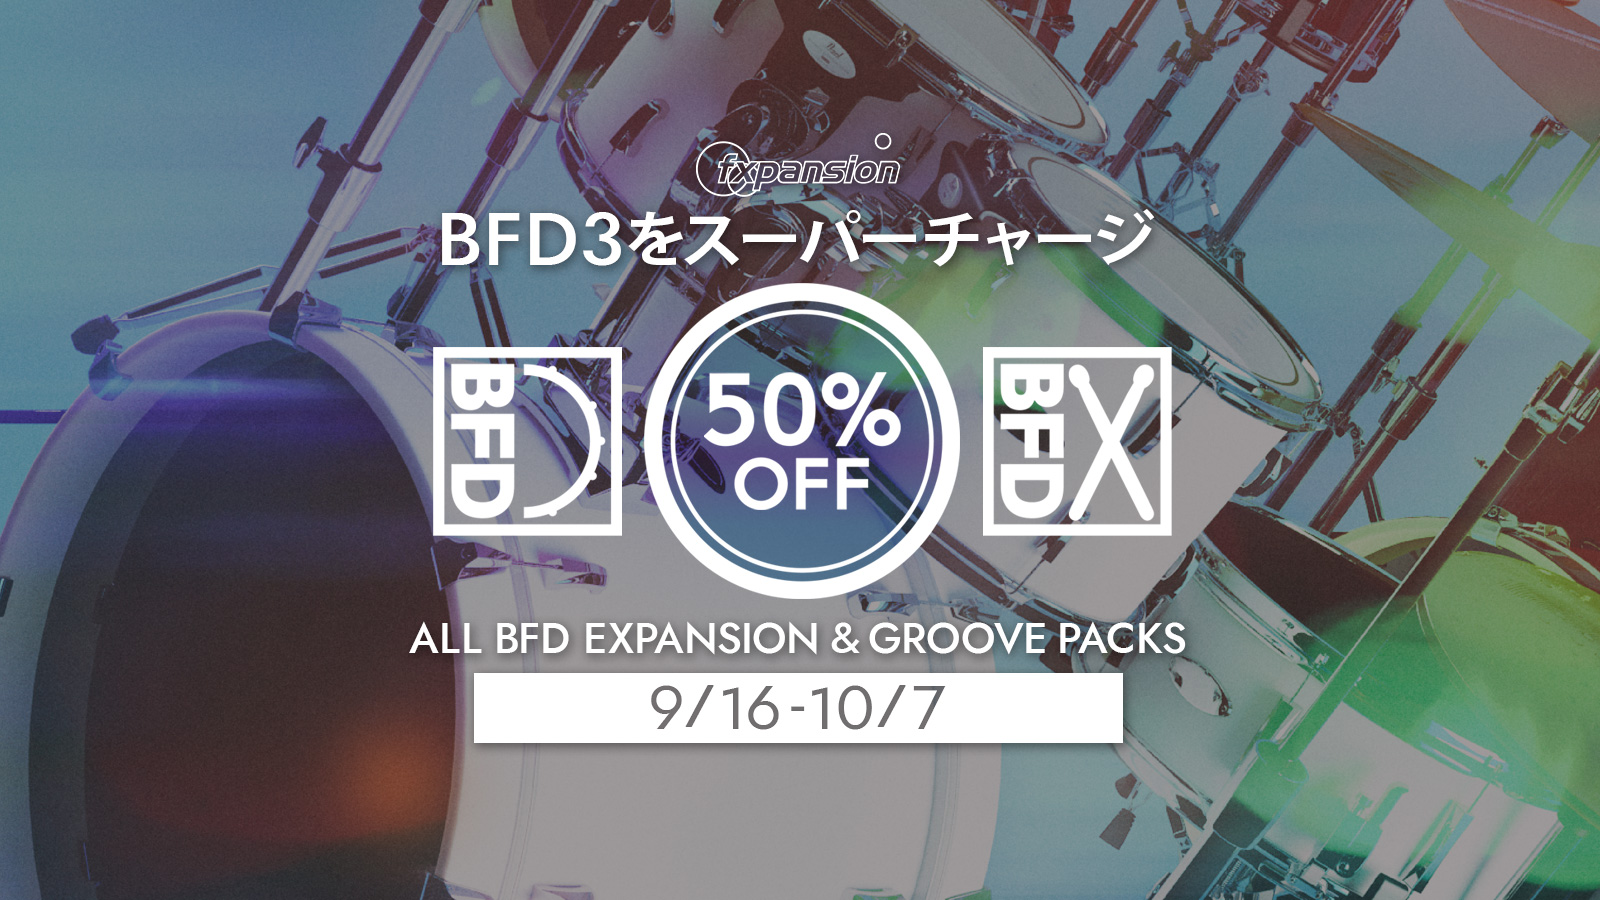 BFD3をスーパーチャージ!BFD Expansions & Grooves全製品が50% OFF